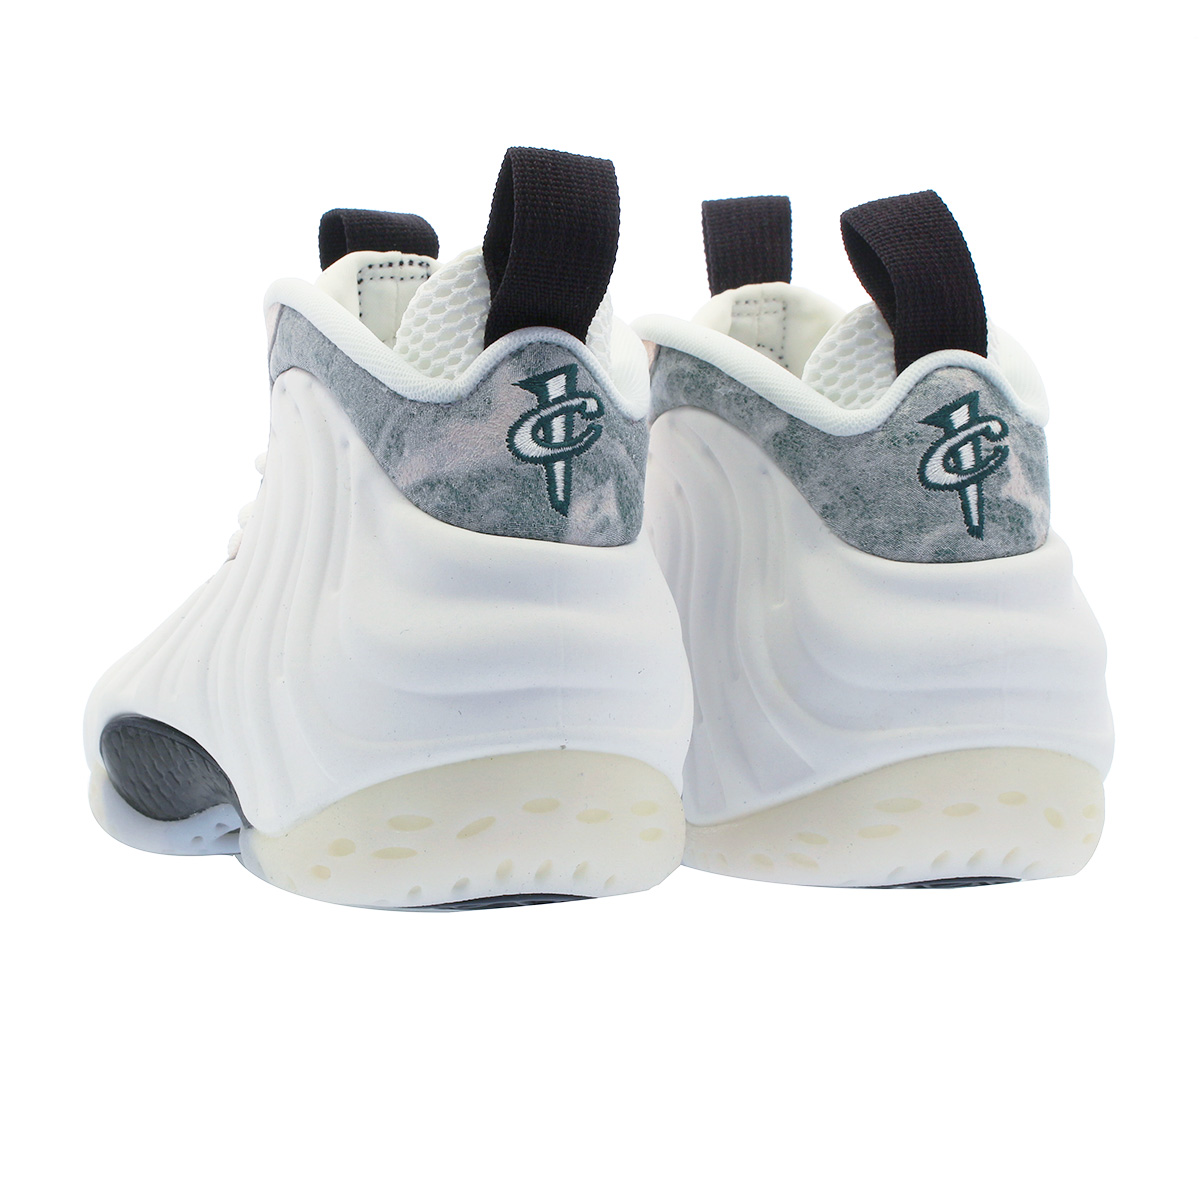 3d38998b3fc NIKE WMNS AIR FOAMPOSITE ONE ナイキウィメンズフォームポジットワン WHITE SUMMIT WHITE OIL GREY  aa3963-101